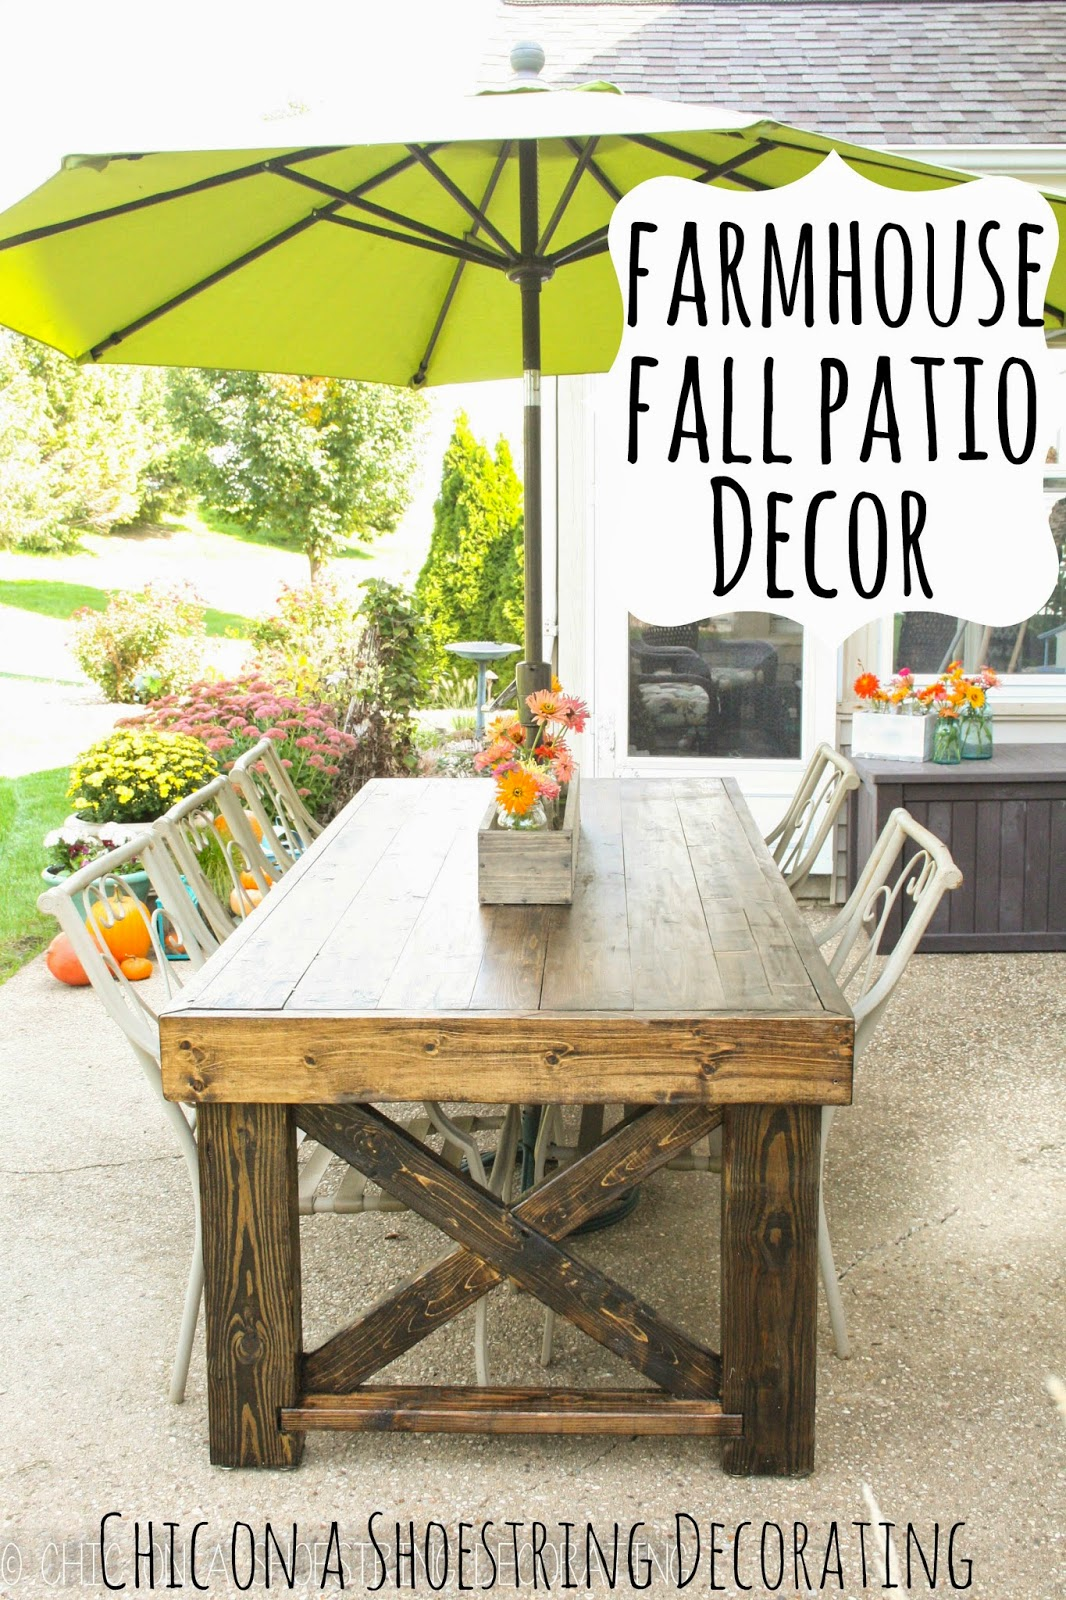 chic on a shoestring decorating: farmhouse fall patio decor